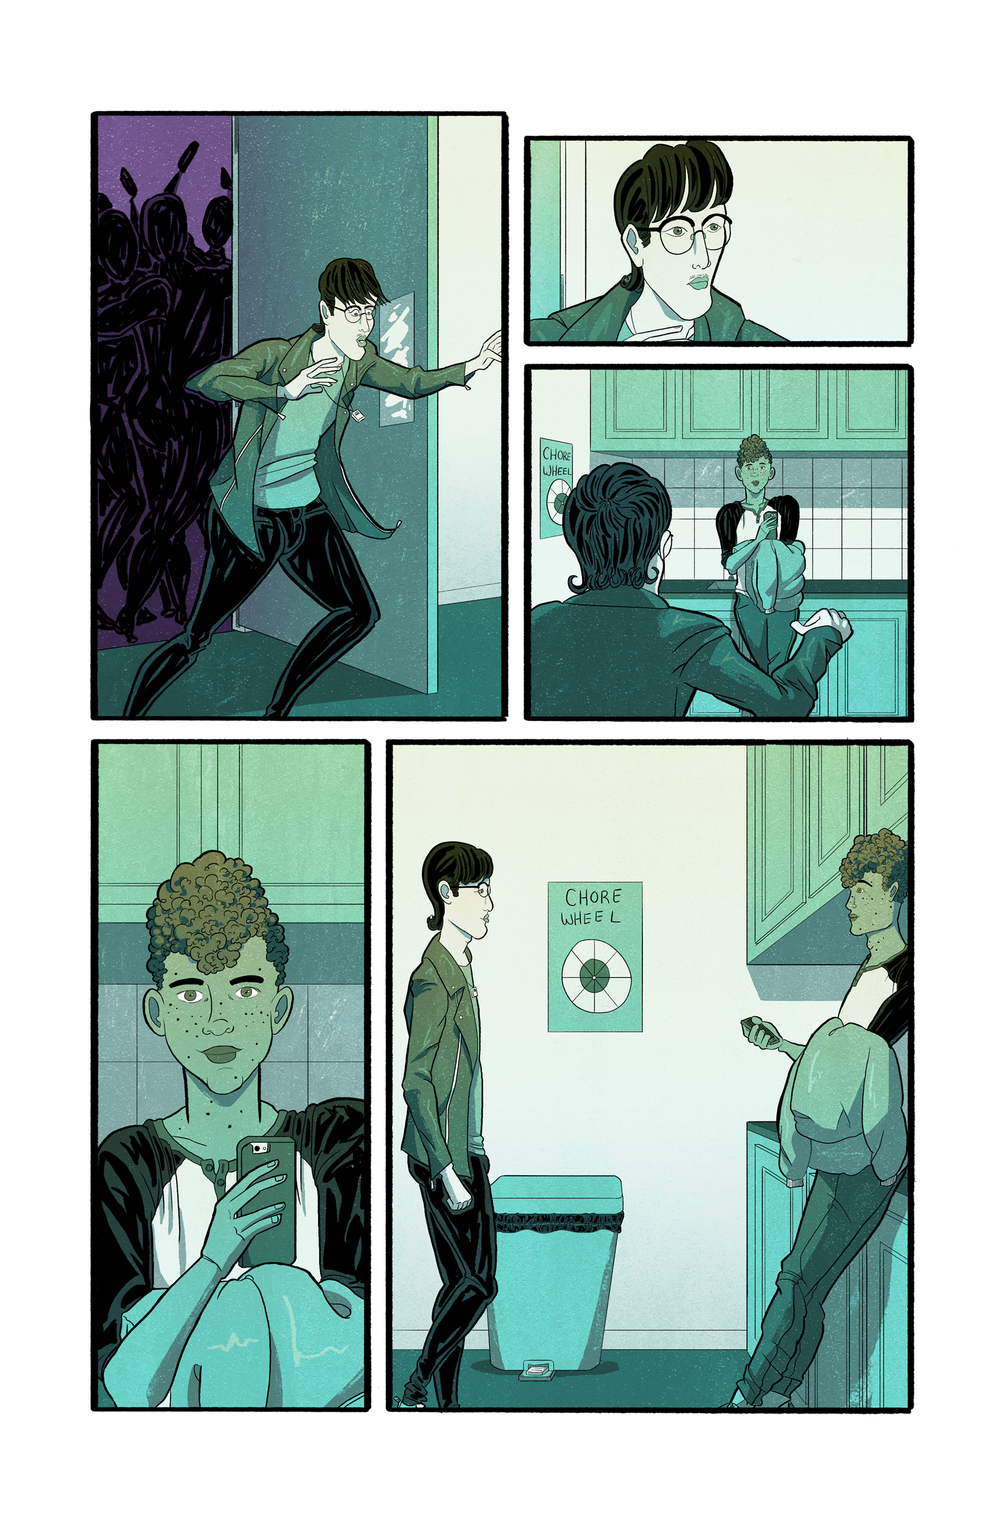 02untitled sad gay boy comic - page 07.png